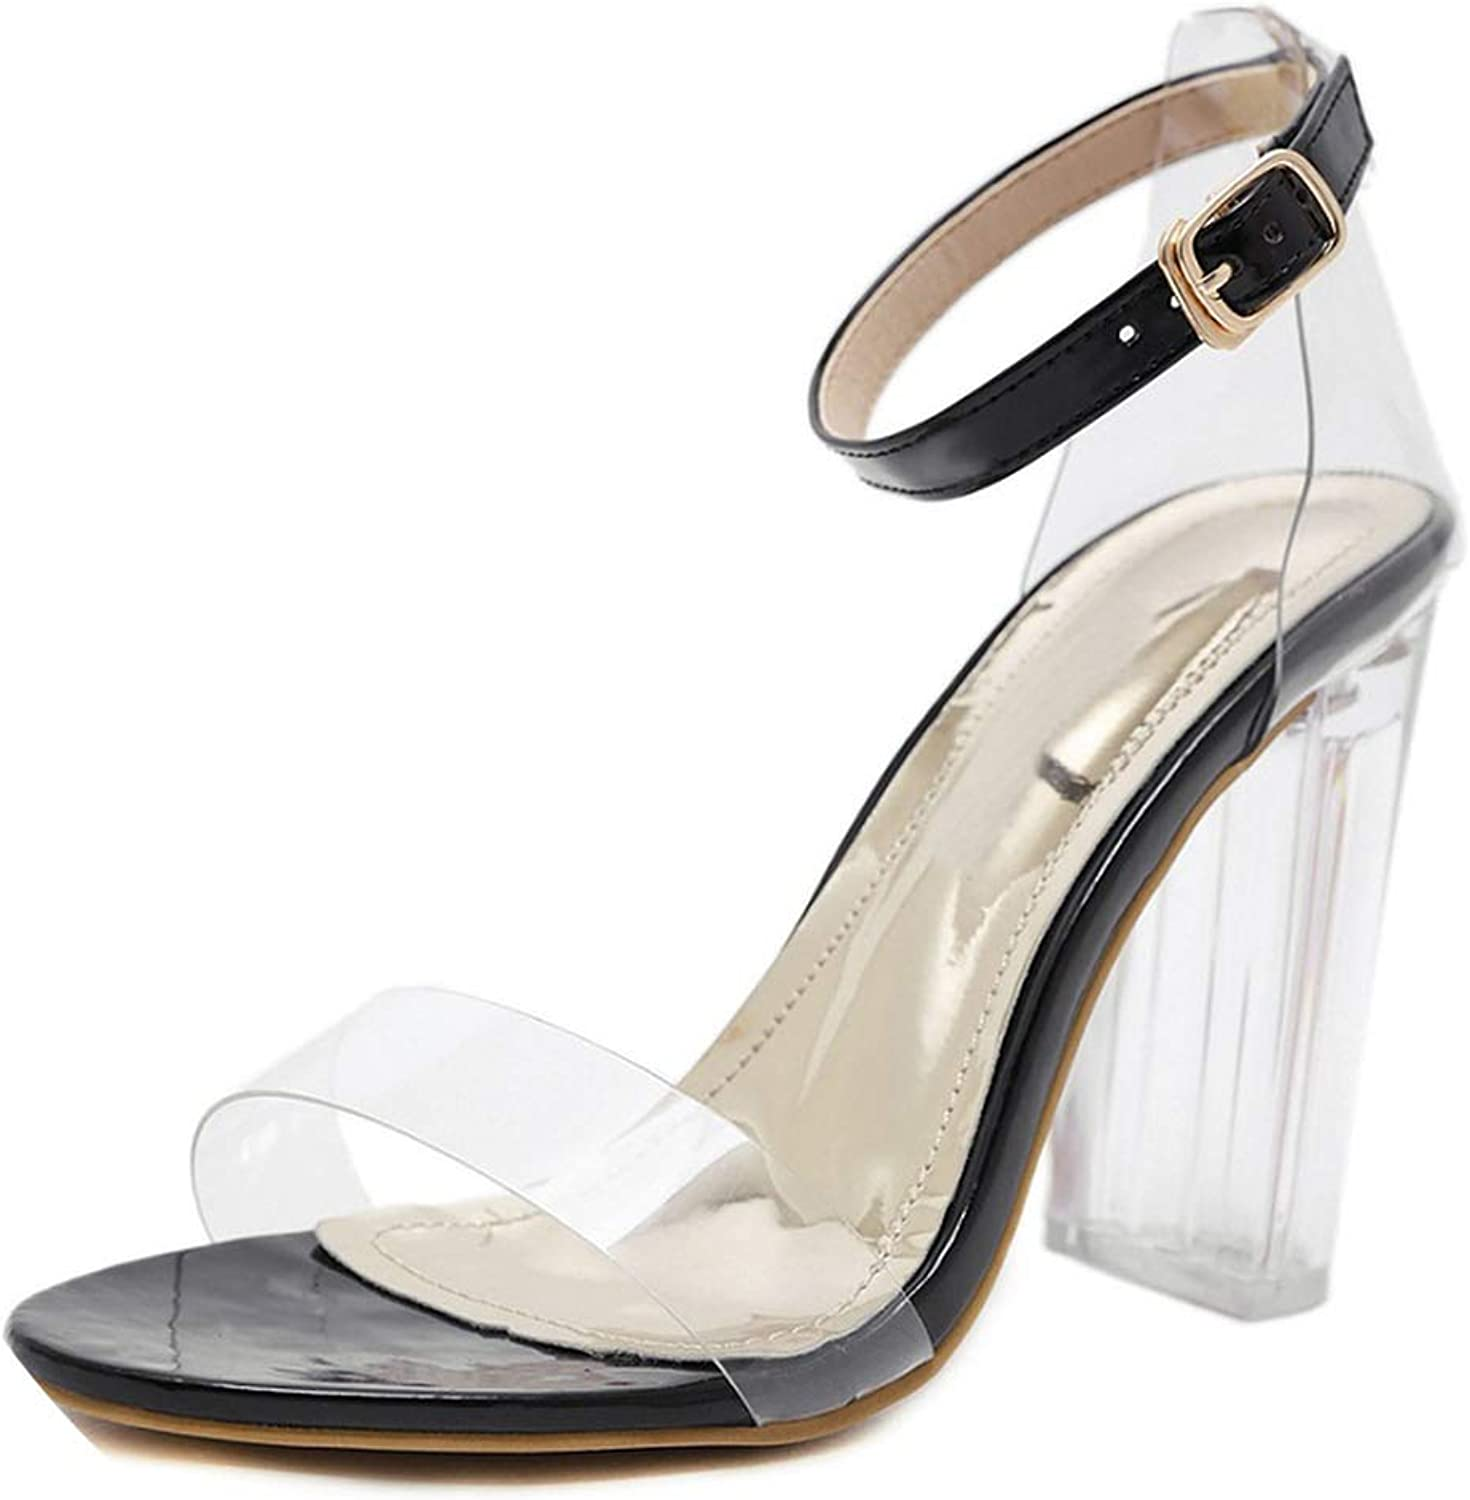 Mebake Summer PVC Female Sandals Party Shallow Mouth Transparent Pointed High Heels Bare Strap with Crystal Sandals